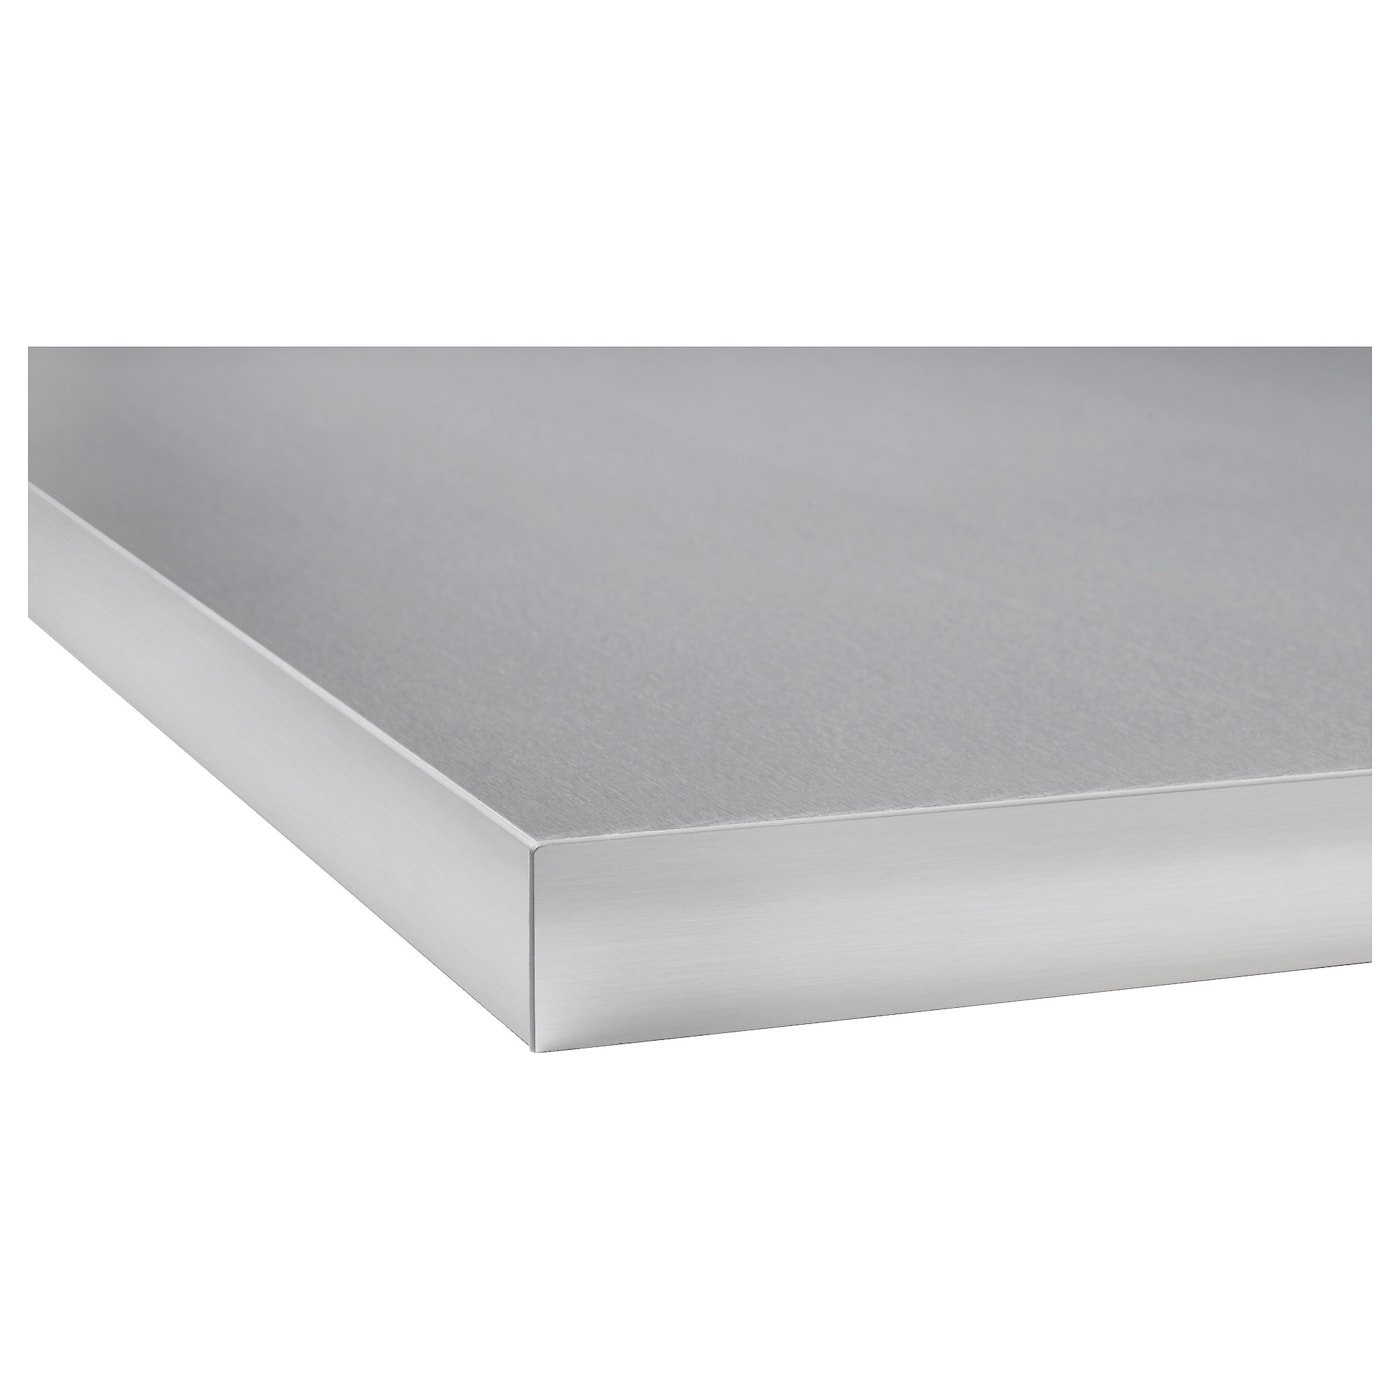 HÄLLESTAD Worktop, double-sided White/aluminium effect with metal ...